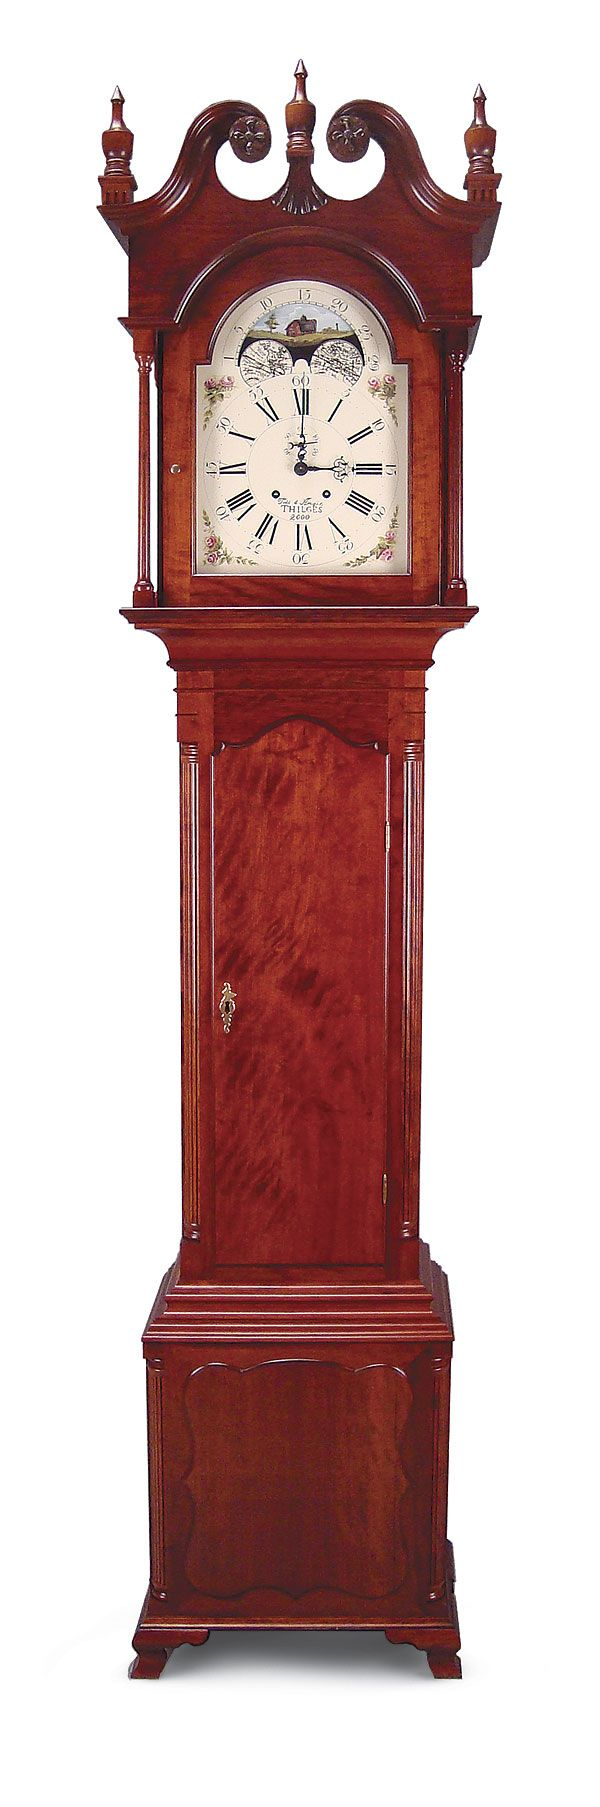 Winchester Tall Clock By Todd Thilges Thilges Started This Cherry Reproduction 12 In Deep By 22 In Wide By 96 In Clock Fine Woodworking Antique Wall Clock